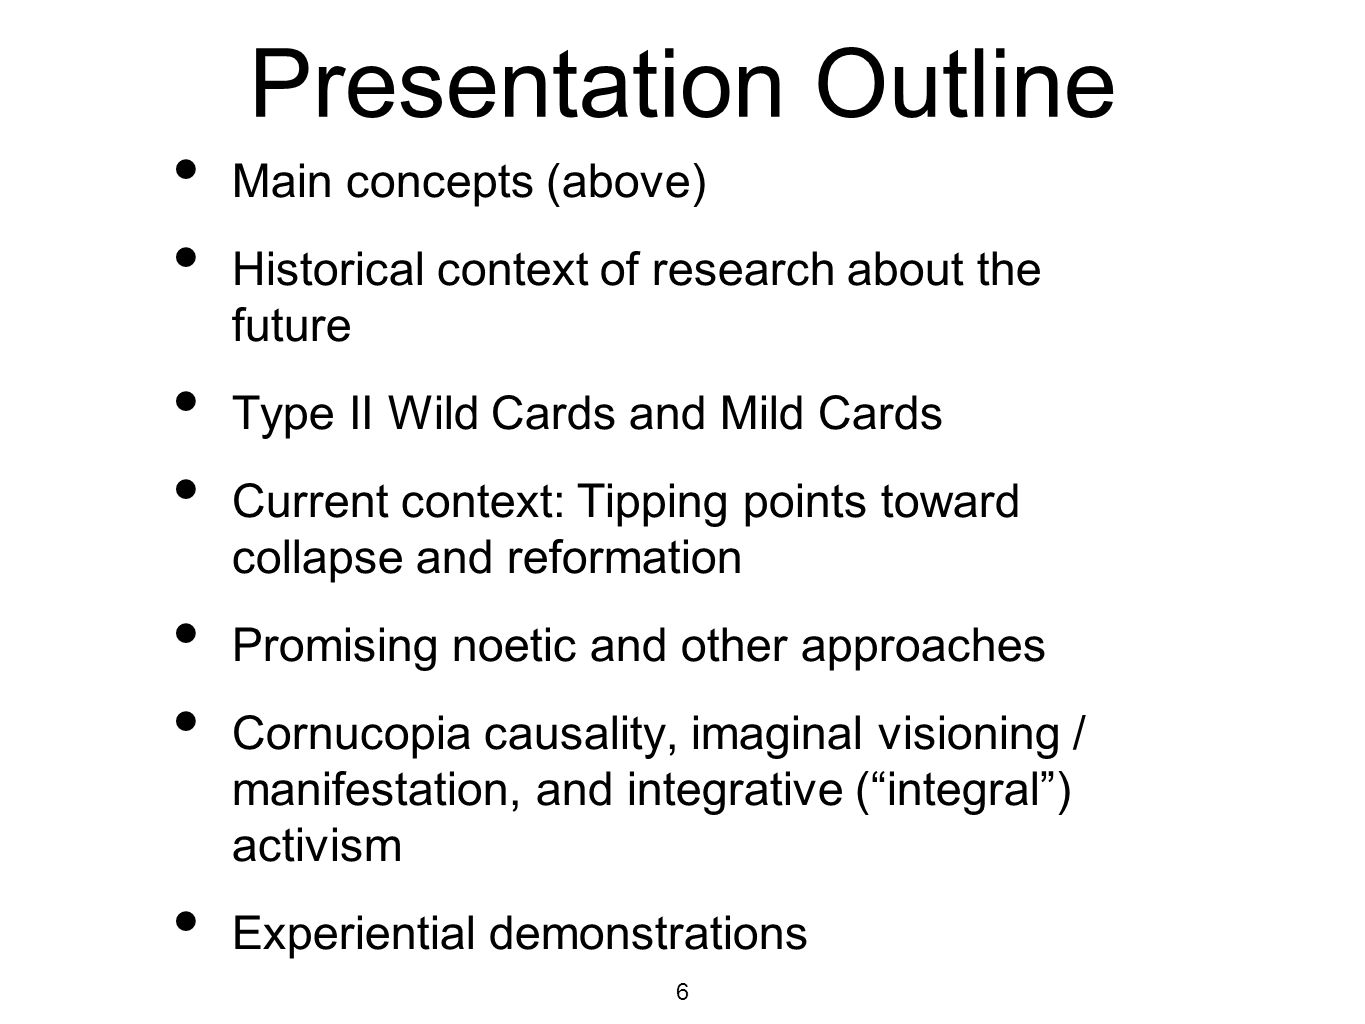 6 Presentation Outline Main concepts (above) Historical context of research about the future Type II Wild Cards and Mild Cards Current context: Tipping points toward collapse and reformation Promising noetic and other approaches Cornucopia causality, imaginal visioning / manifestation, and integrative (integral) activism Experiential demonstrations